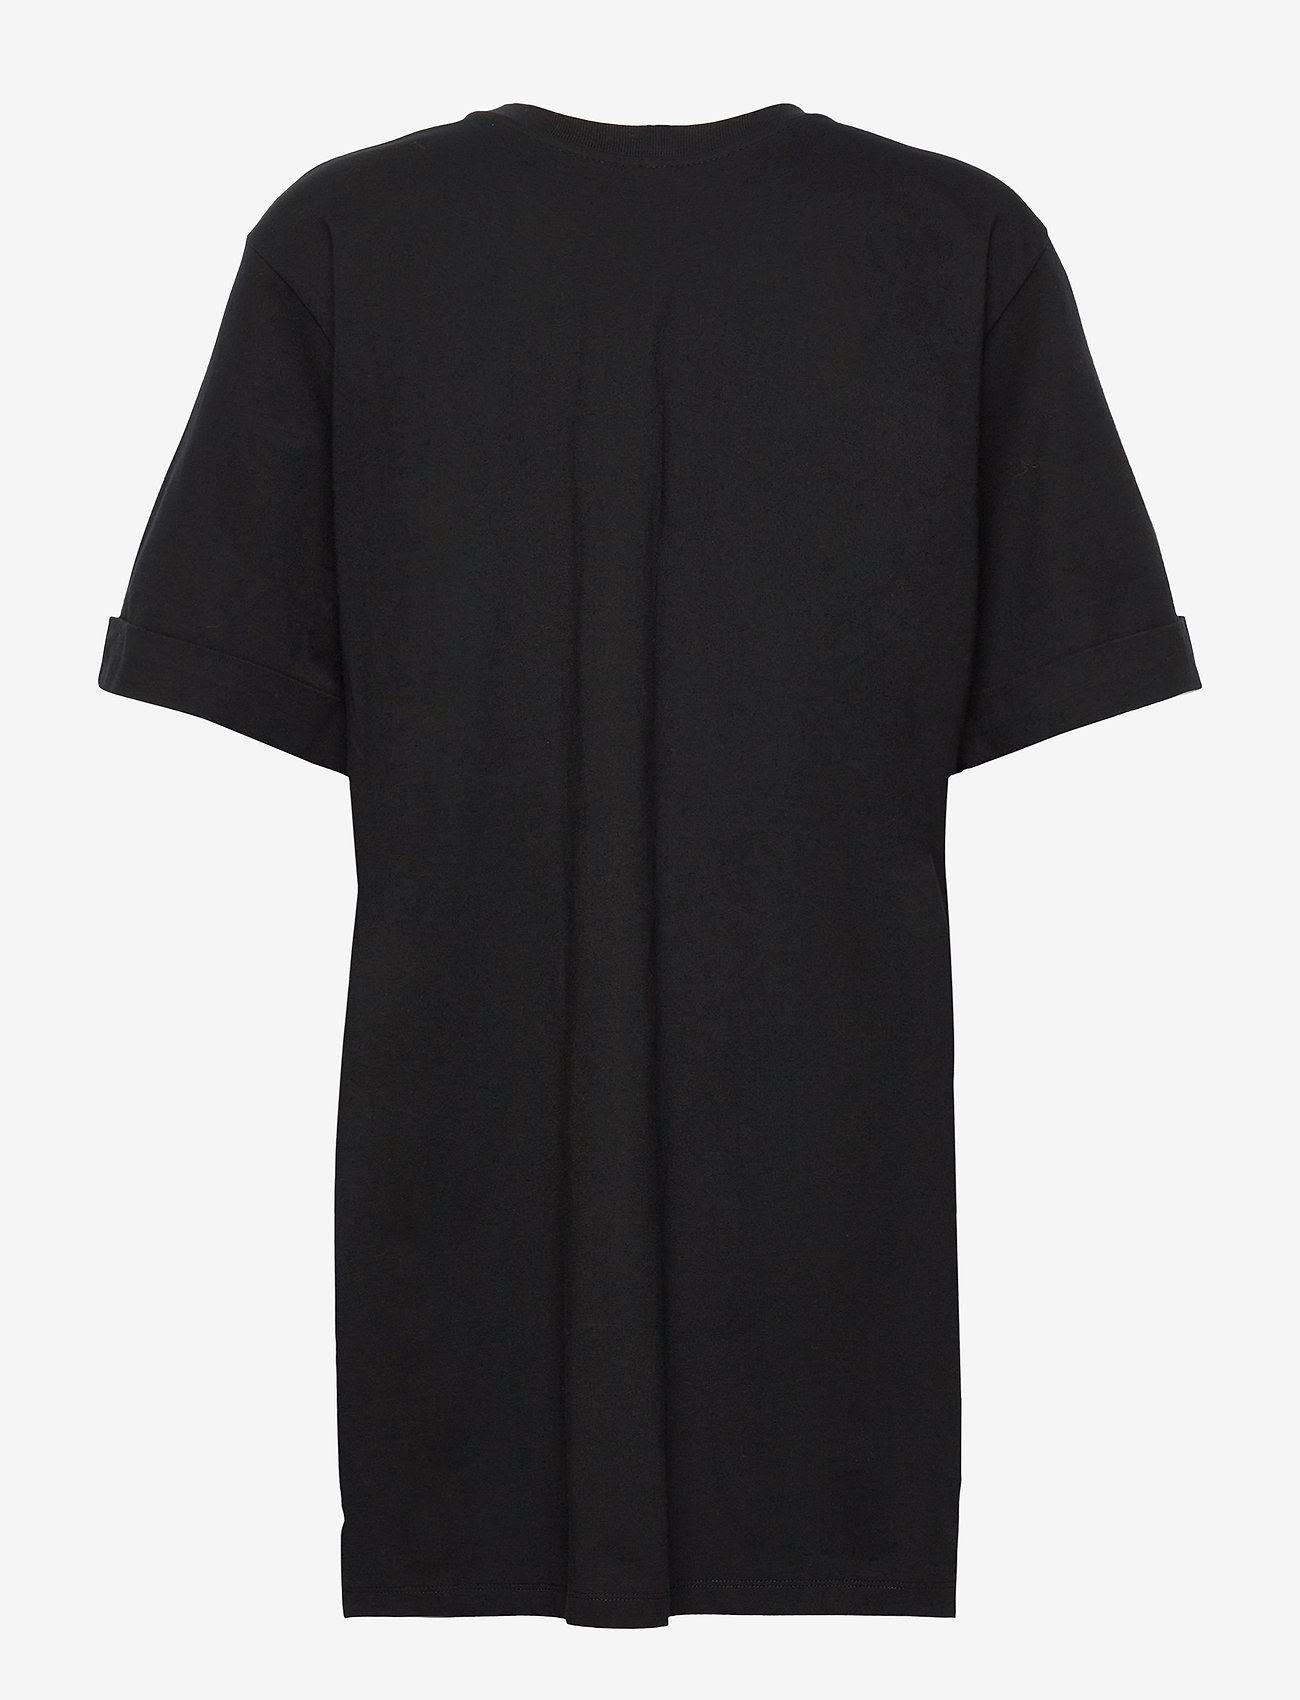 Mother of Pearl - MINTIE OVERSIZED T-SHIRT WITH PEARL BAR - t-shirts - black - 1